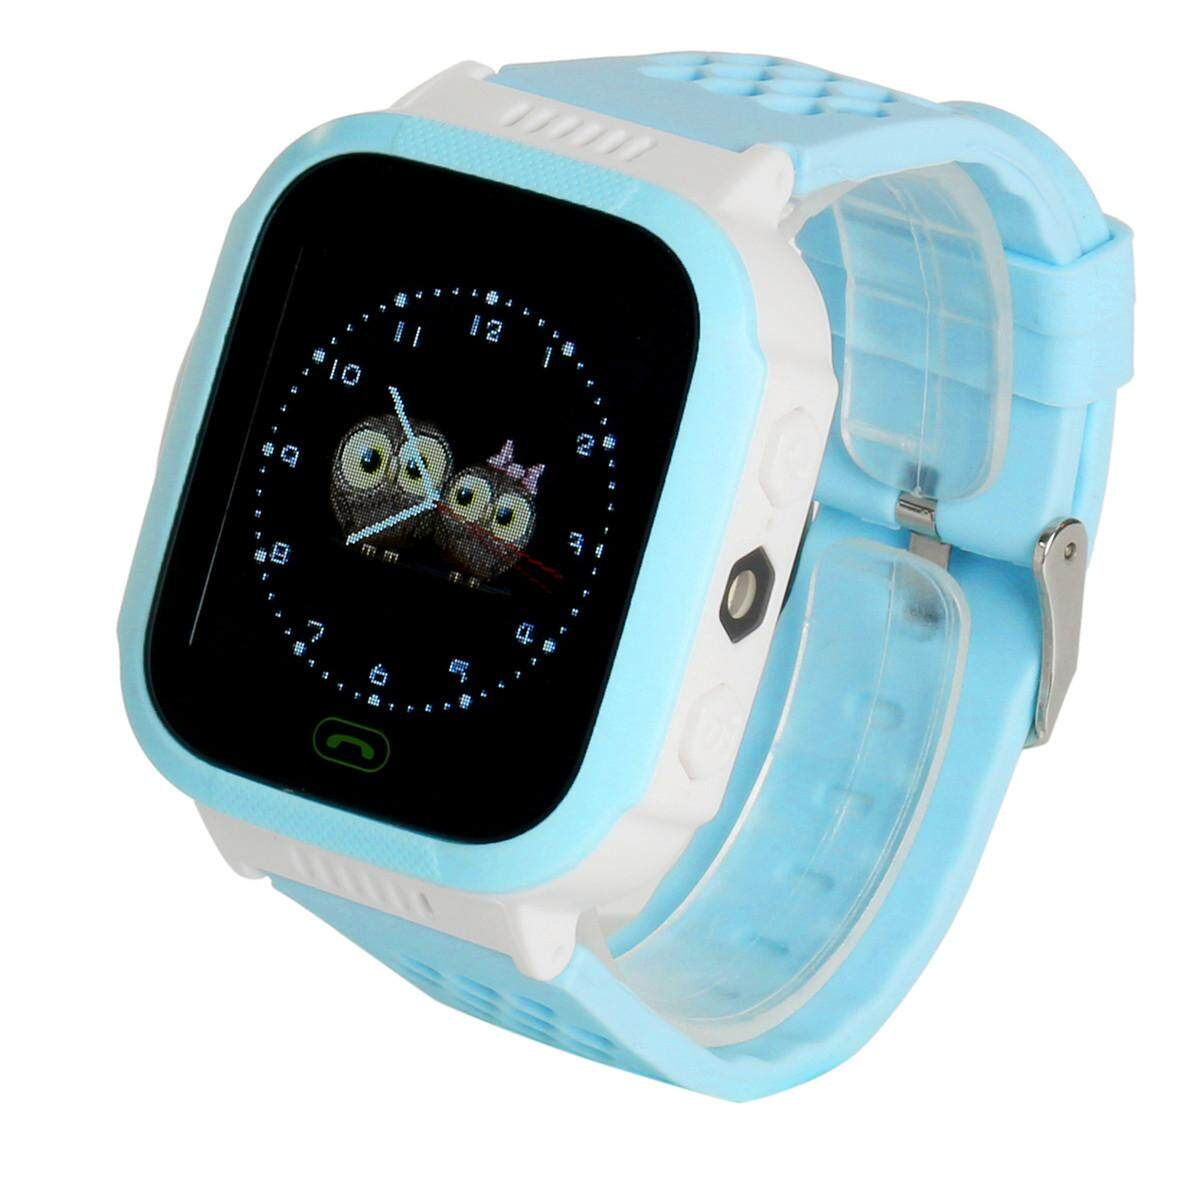 Beli Anti Lost Children Kids Gps Tracker Sos Call Smart Wrist Watch Phone For Phone Intl Online Murah